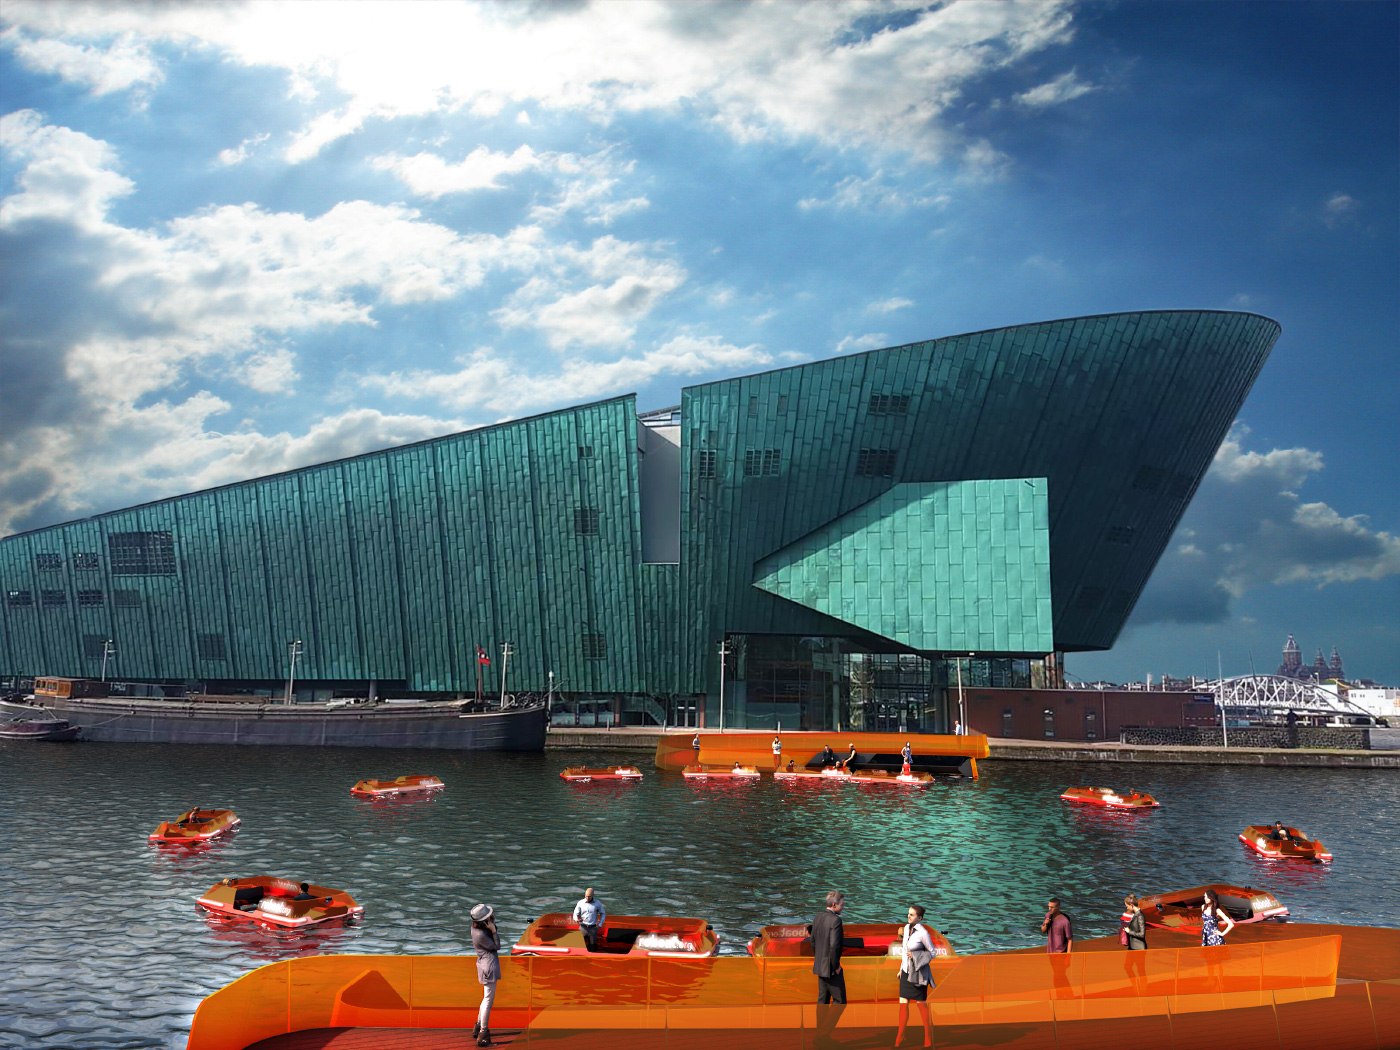 Orange boats in front of a large swooping blue-green building.